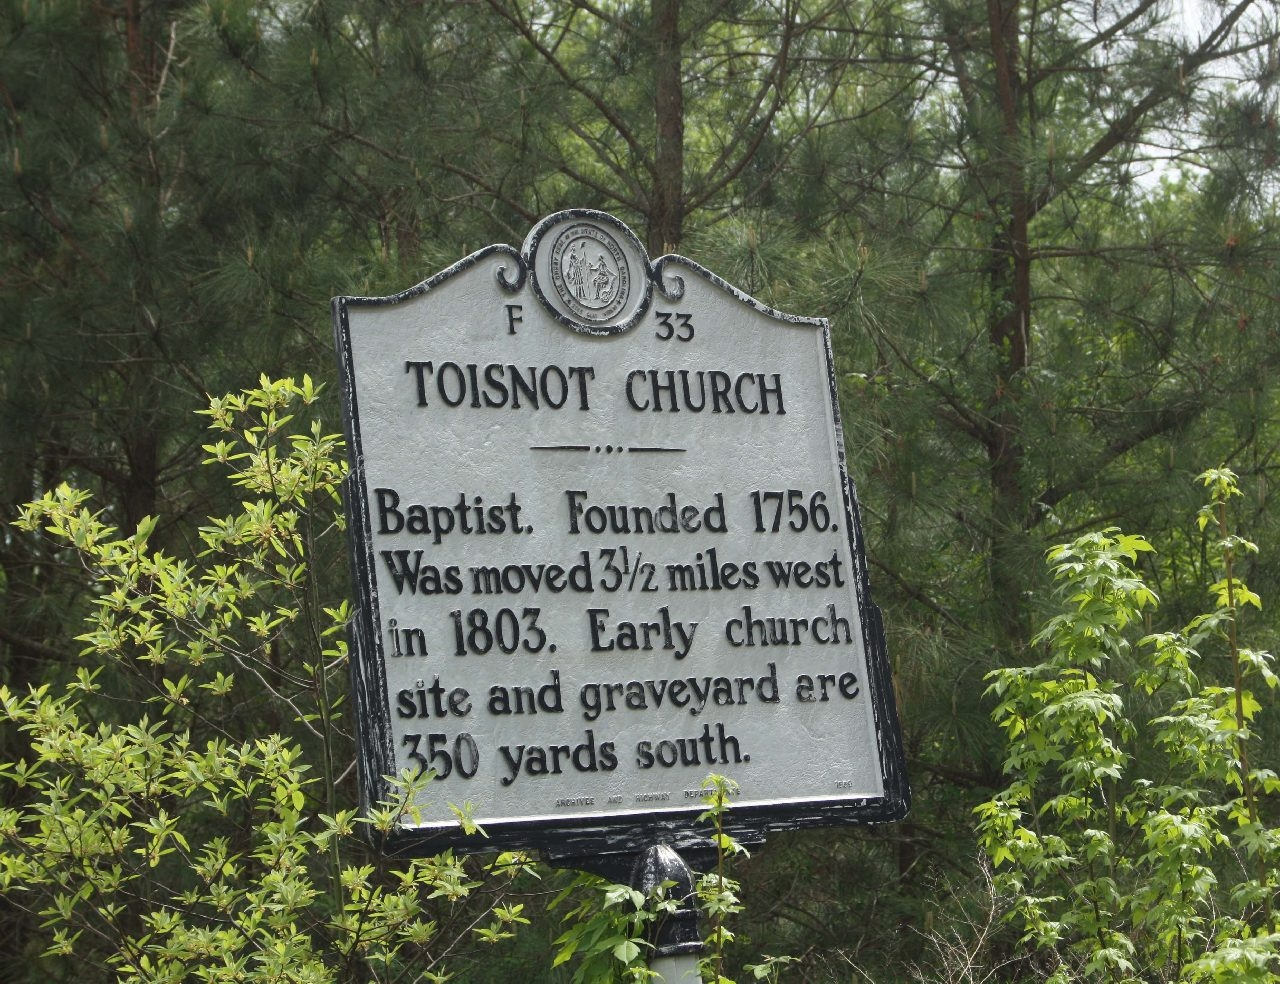 Toisnot Church Marker